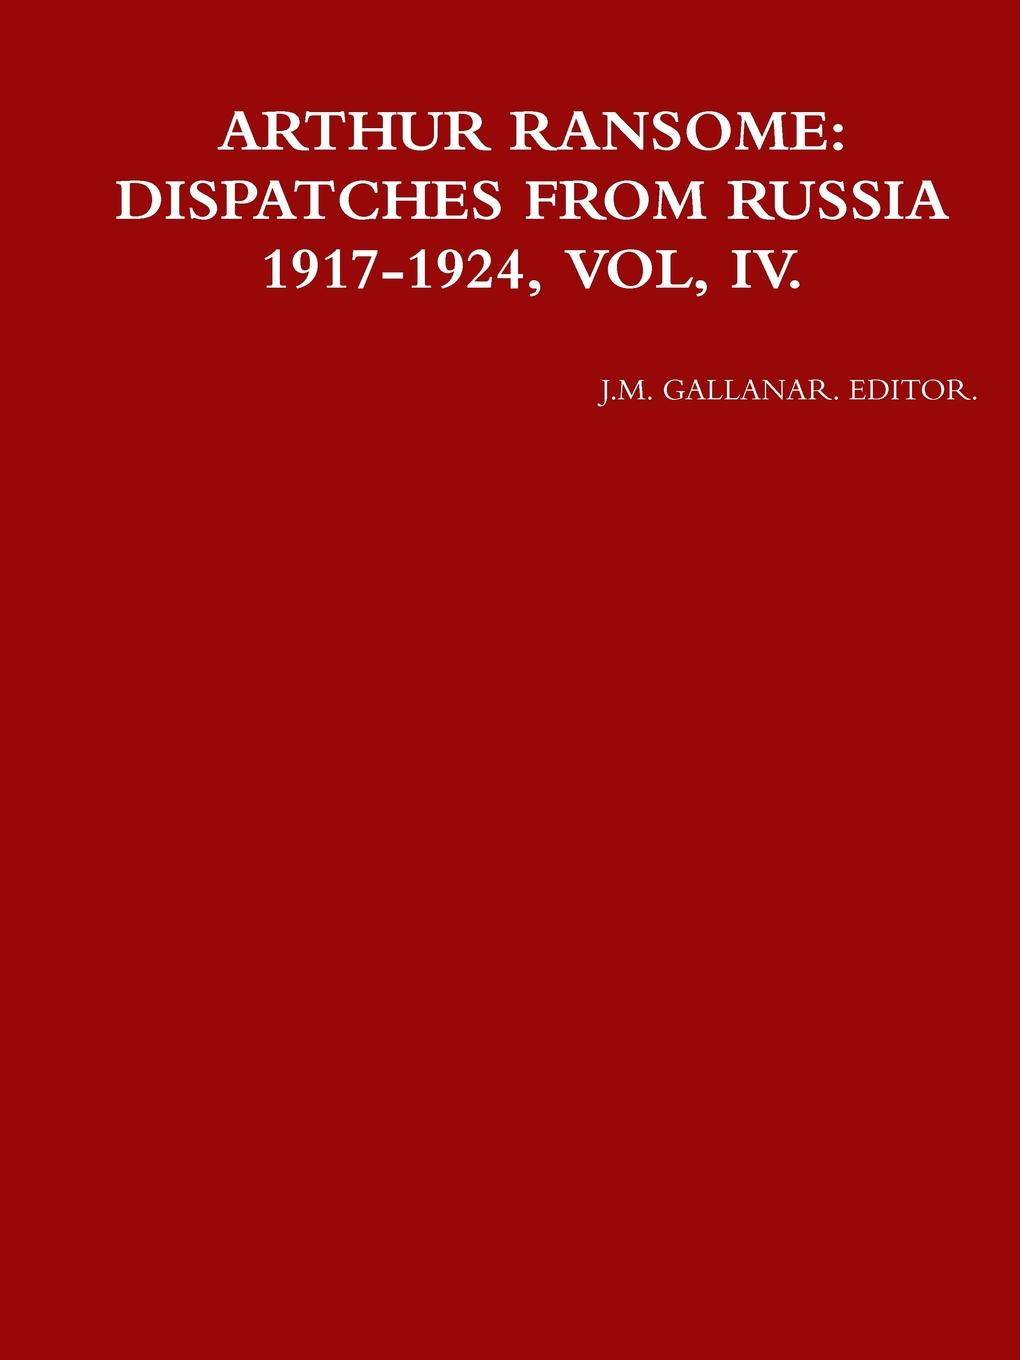 J.M. GALLANAR. EDITOR. ARTHUR RANSOME. DISPATCHES FROM RUSSIA 1917-1924, VOL, IV. 1917 russia s red year